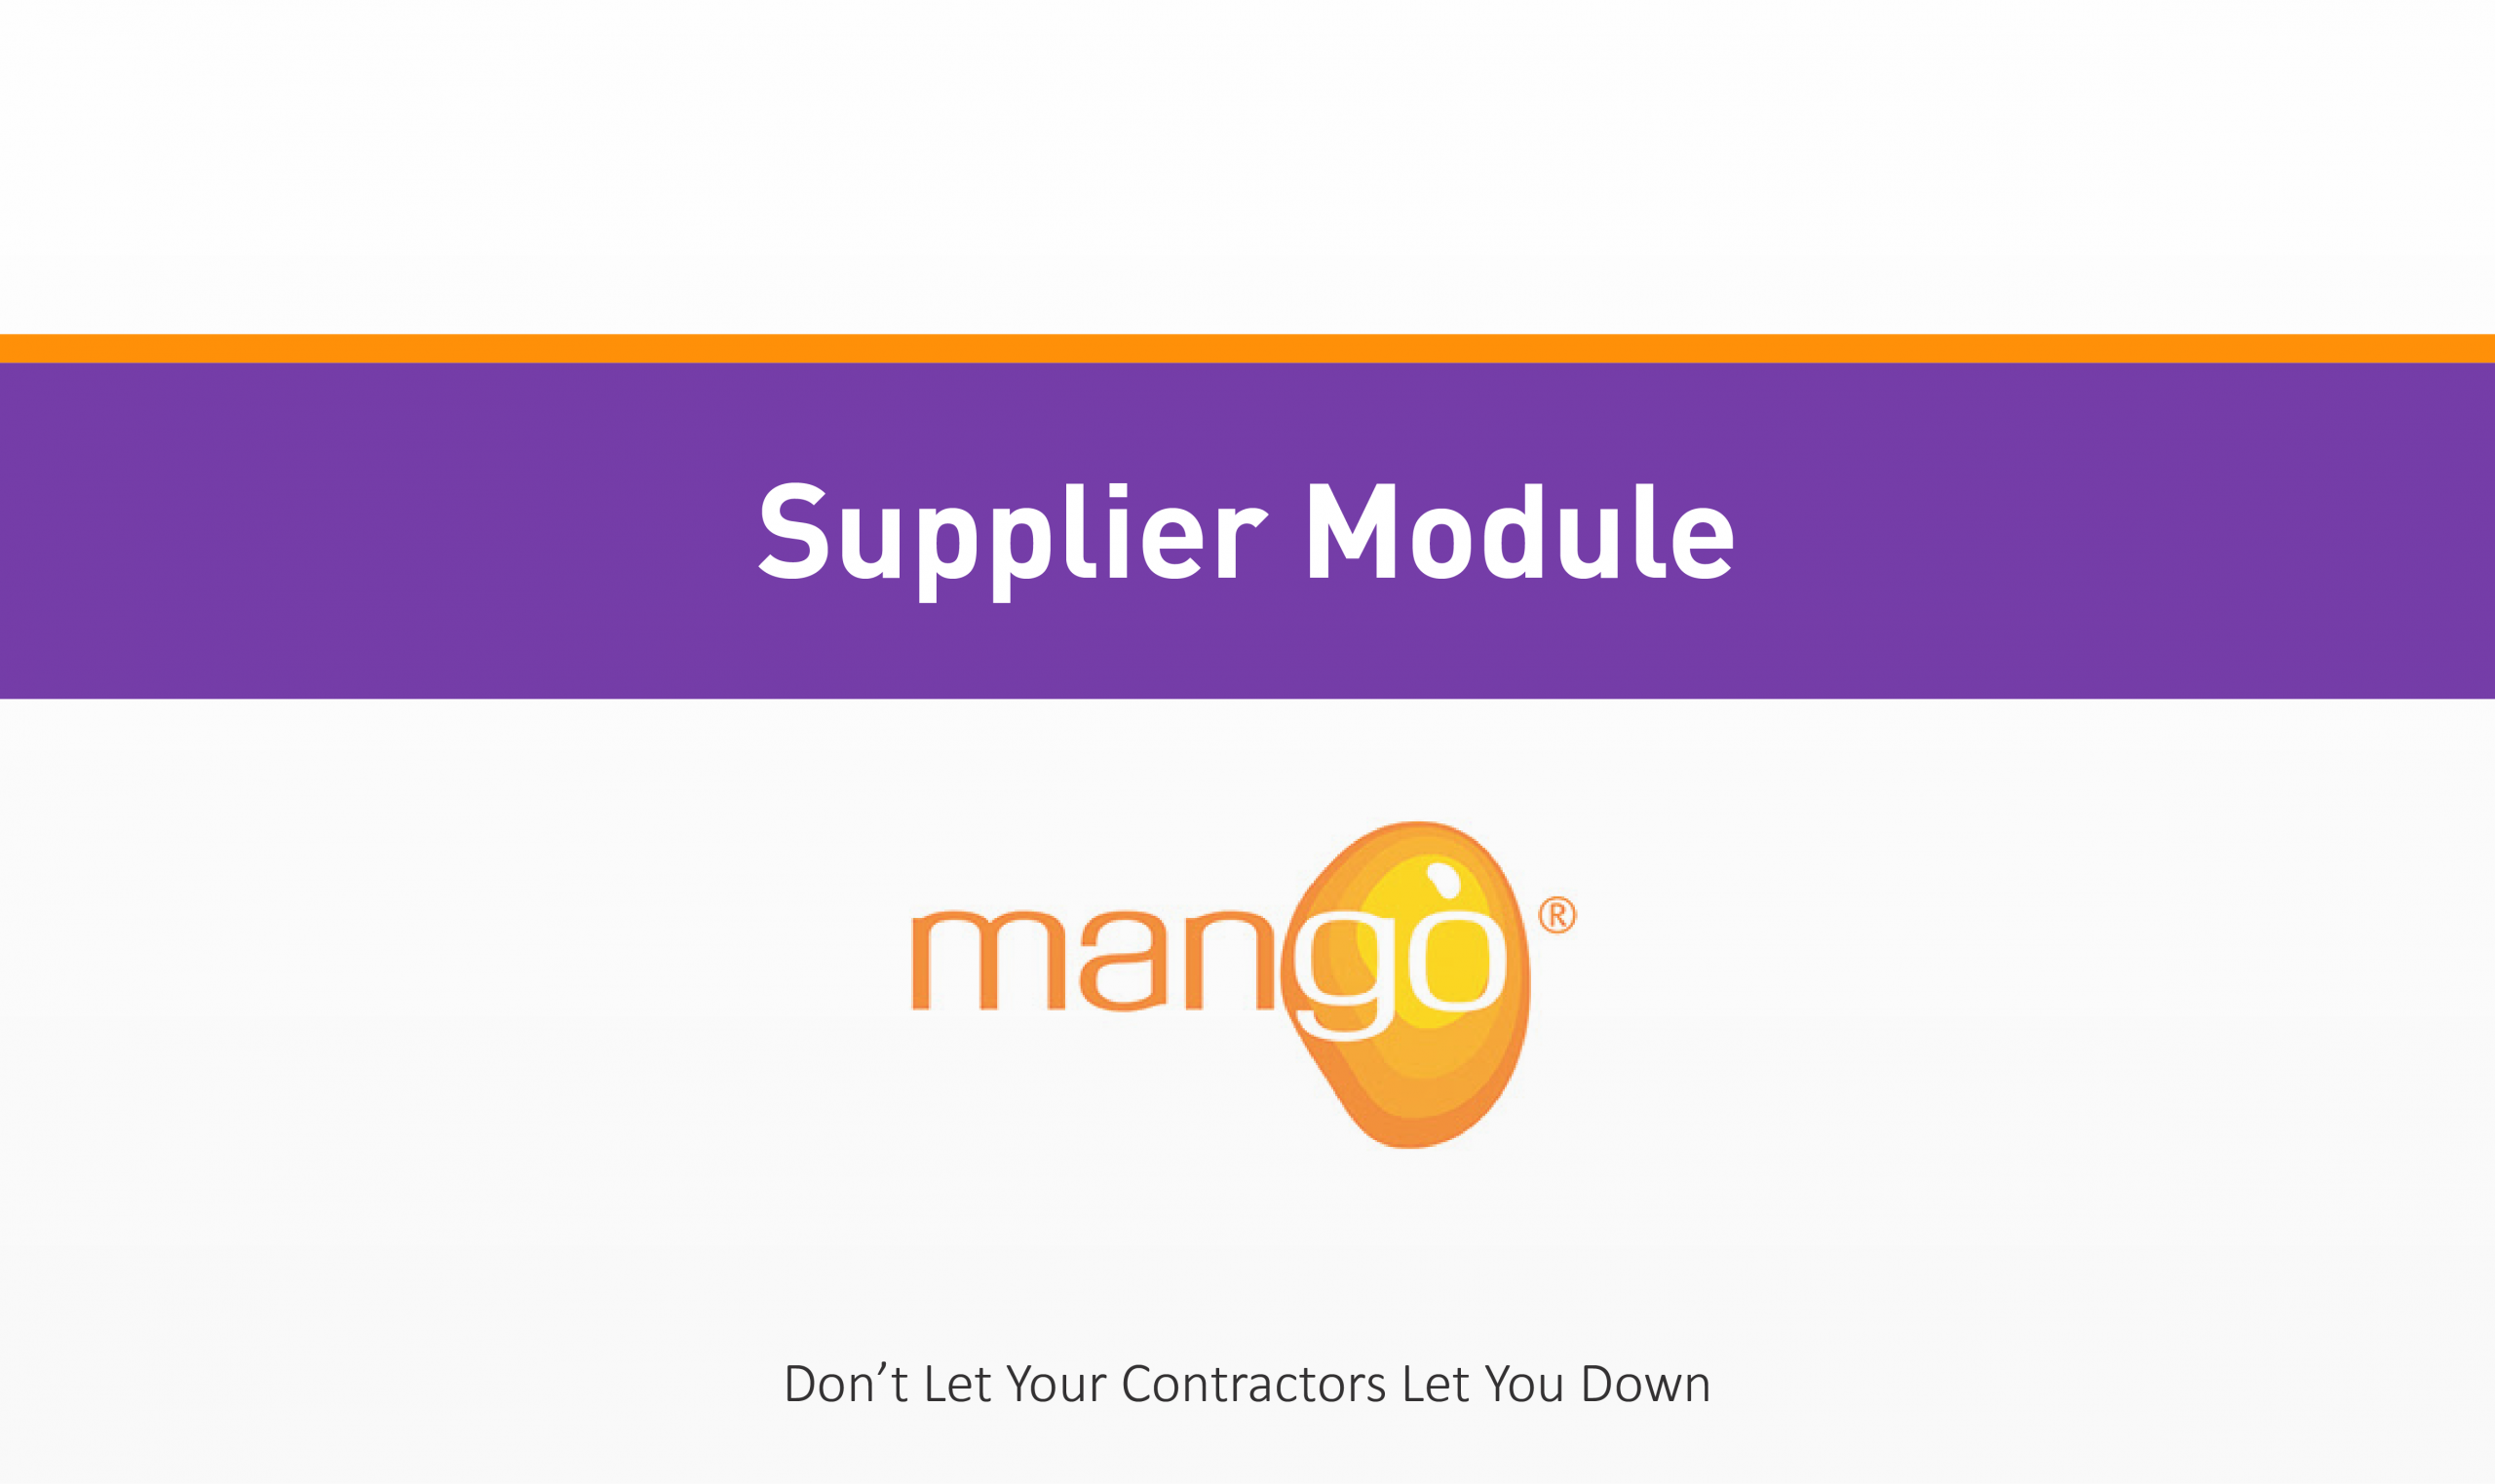 Supplier Training Module Quality Health Safety Environment Management Compliance Services Australia QHSE Consulting And Auditing Mango Compliance Software Solutions